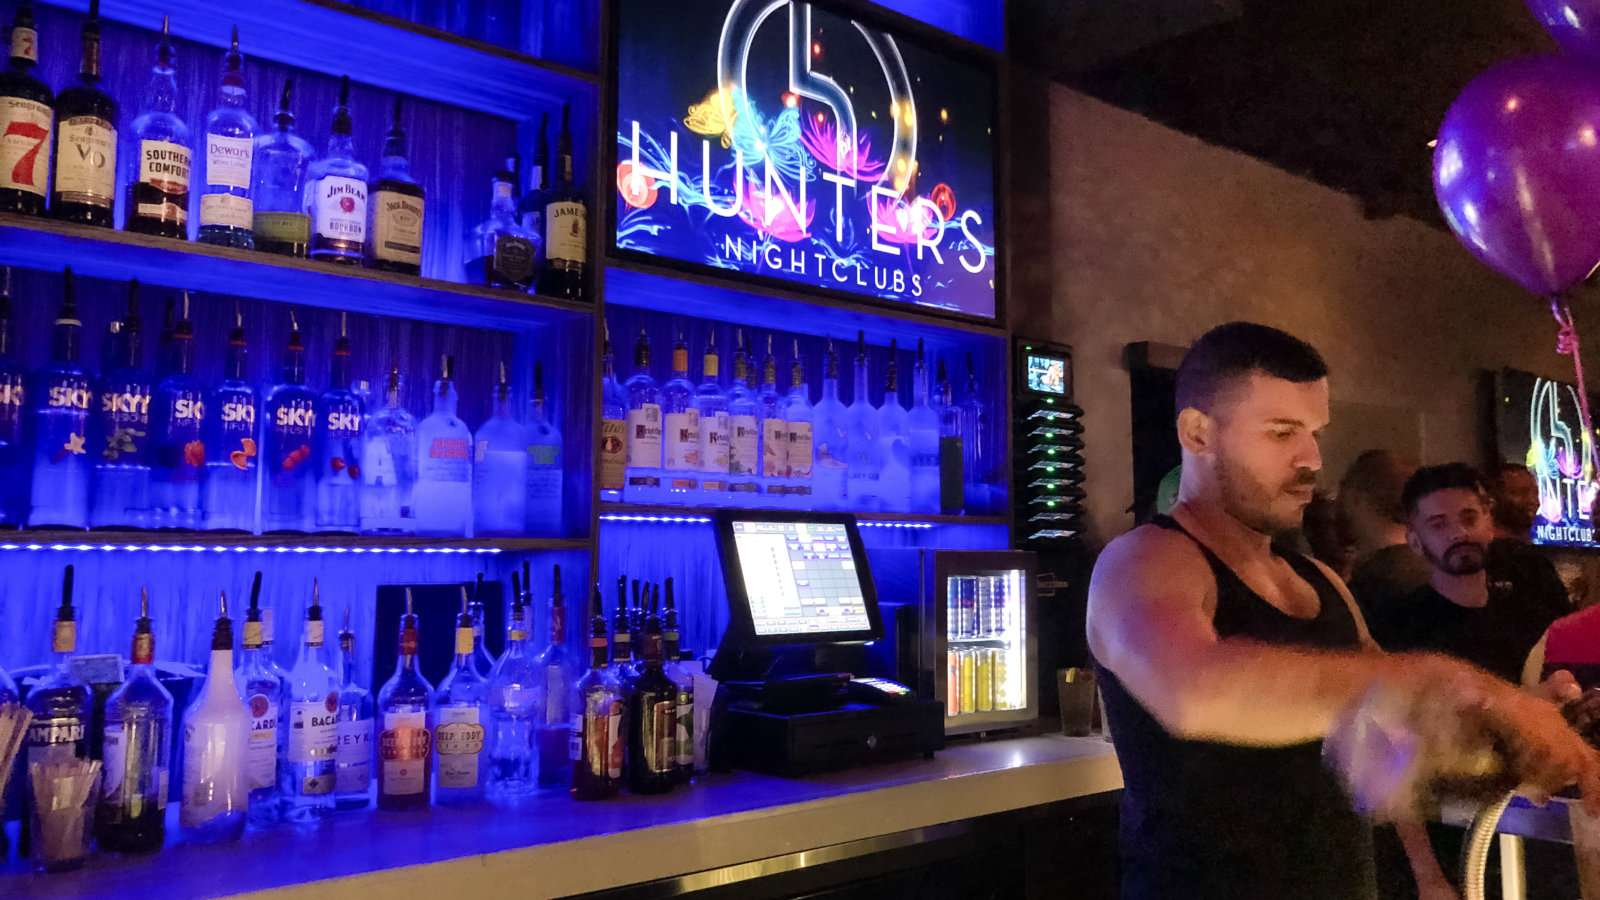 Hunters is the main gay club in Fort Lauderdale, with lots of fun events from karaoke to bear nights